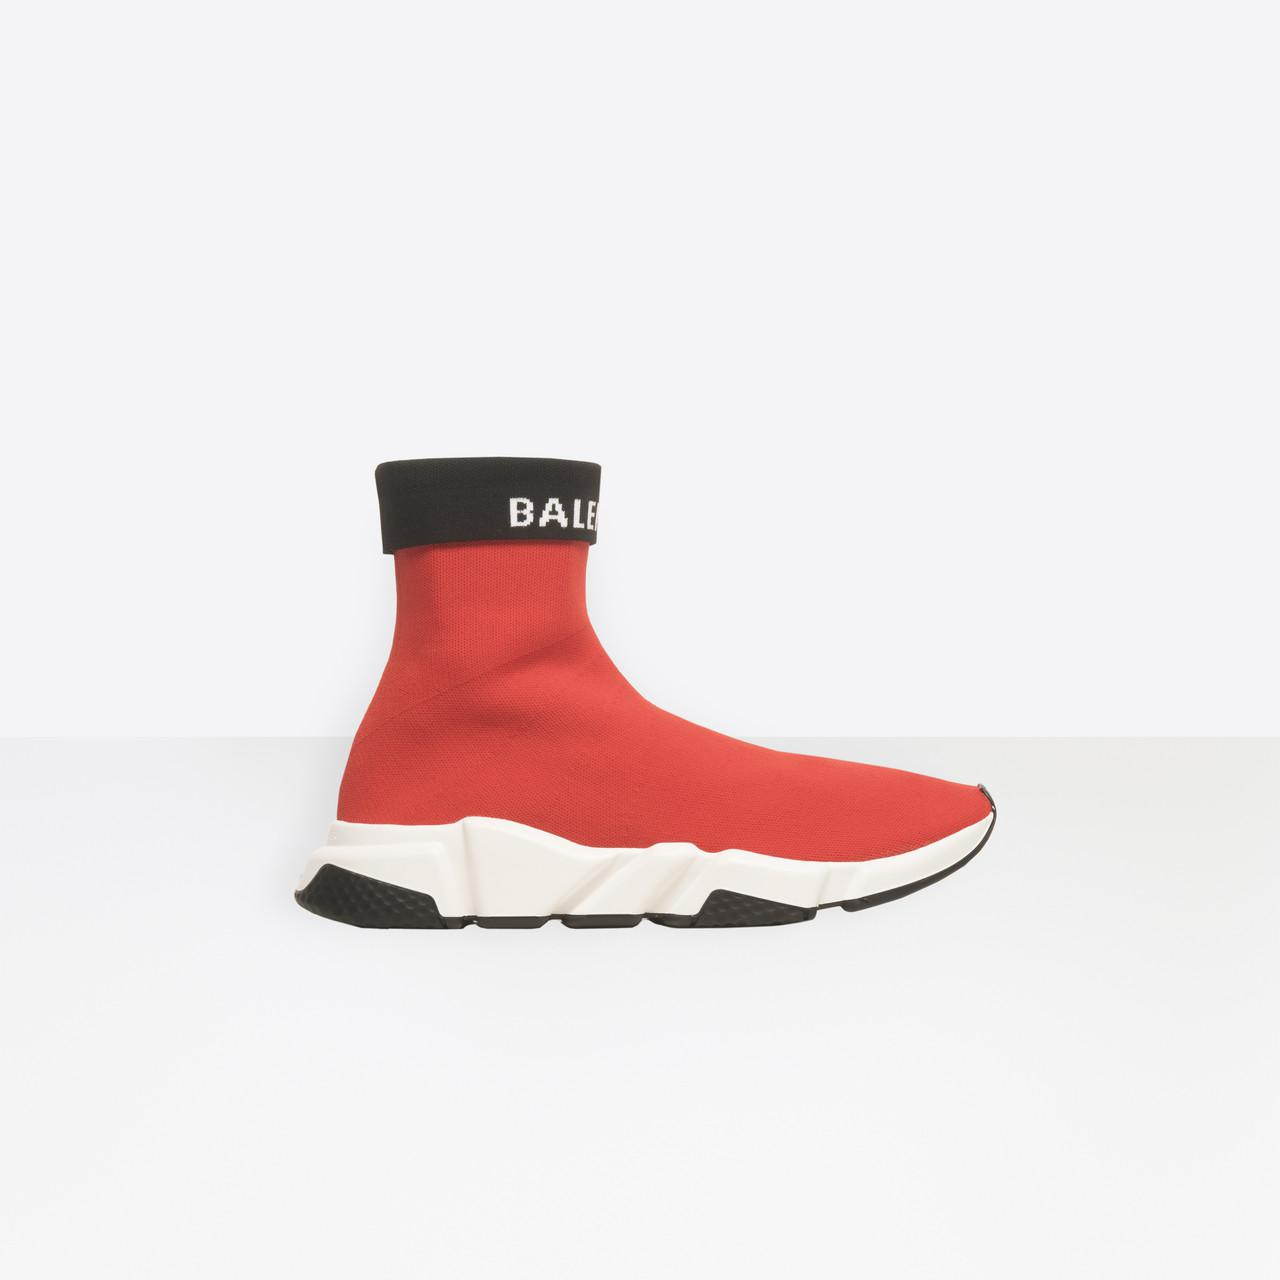 Balenciaga Rubber Speed Sneakers in Red